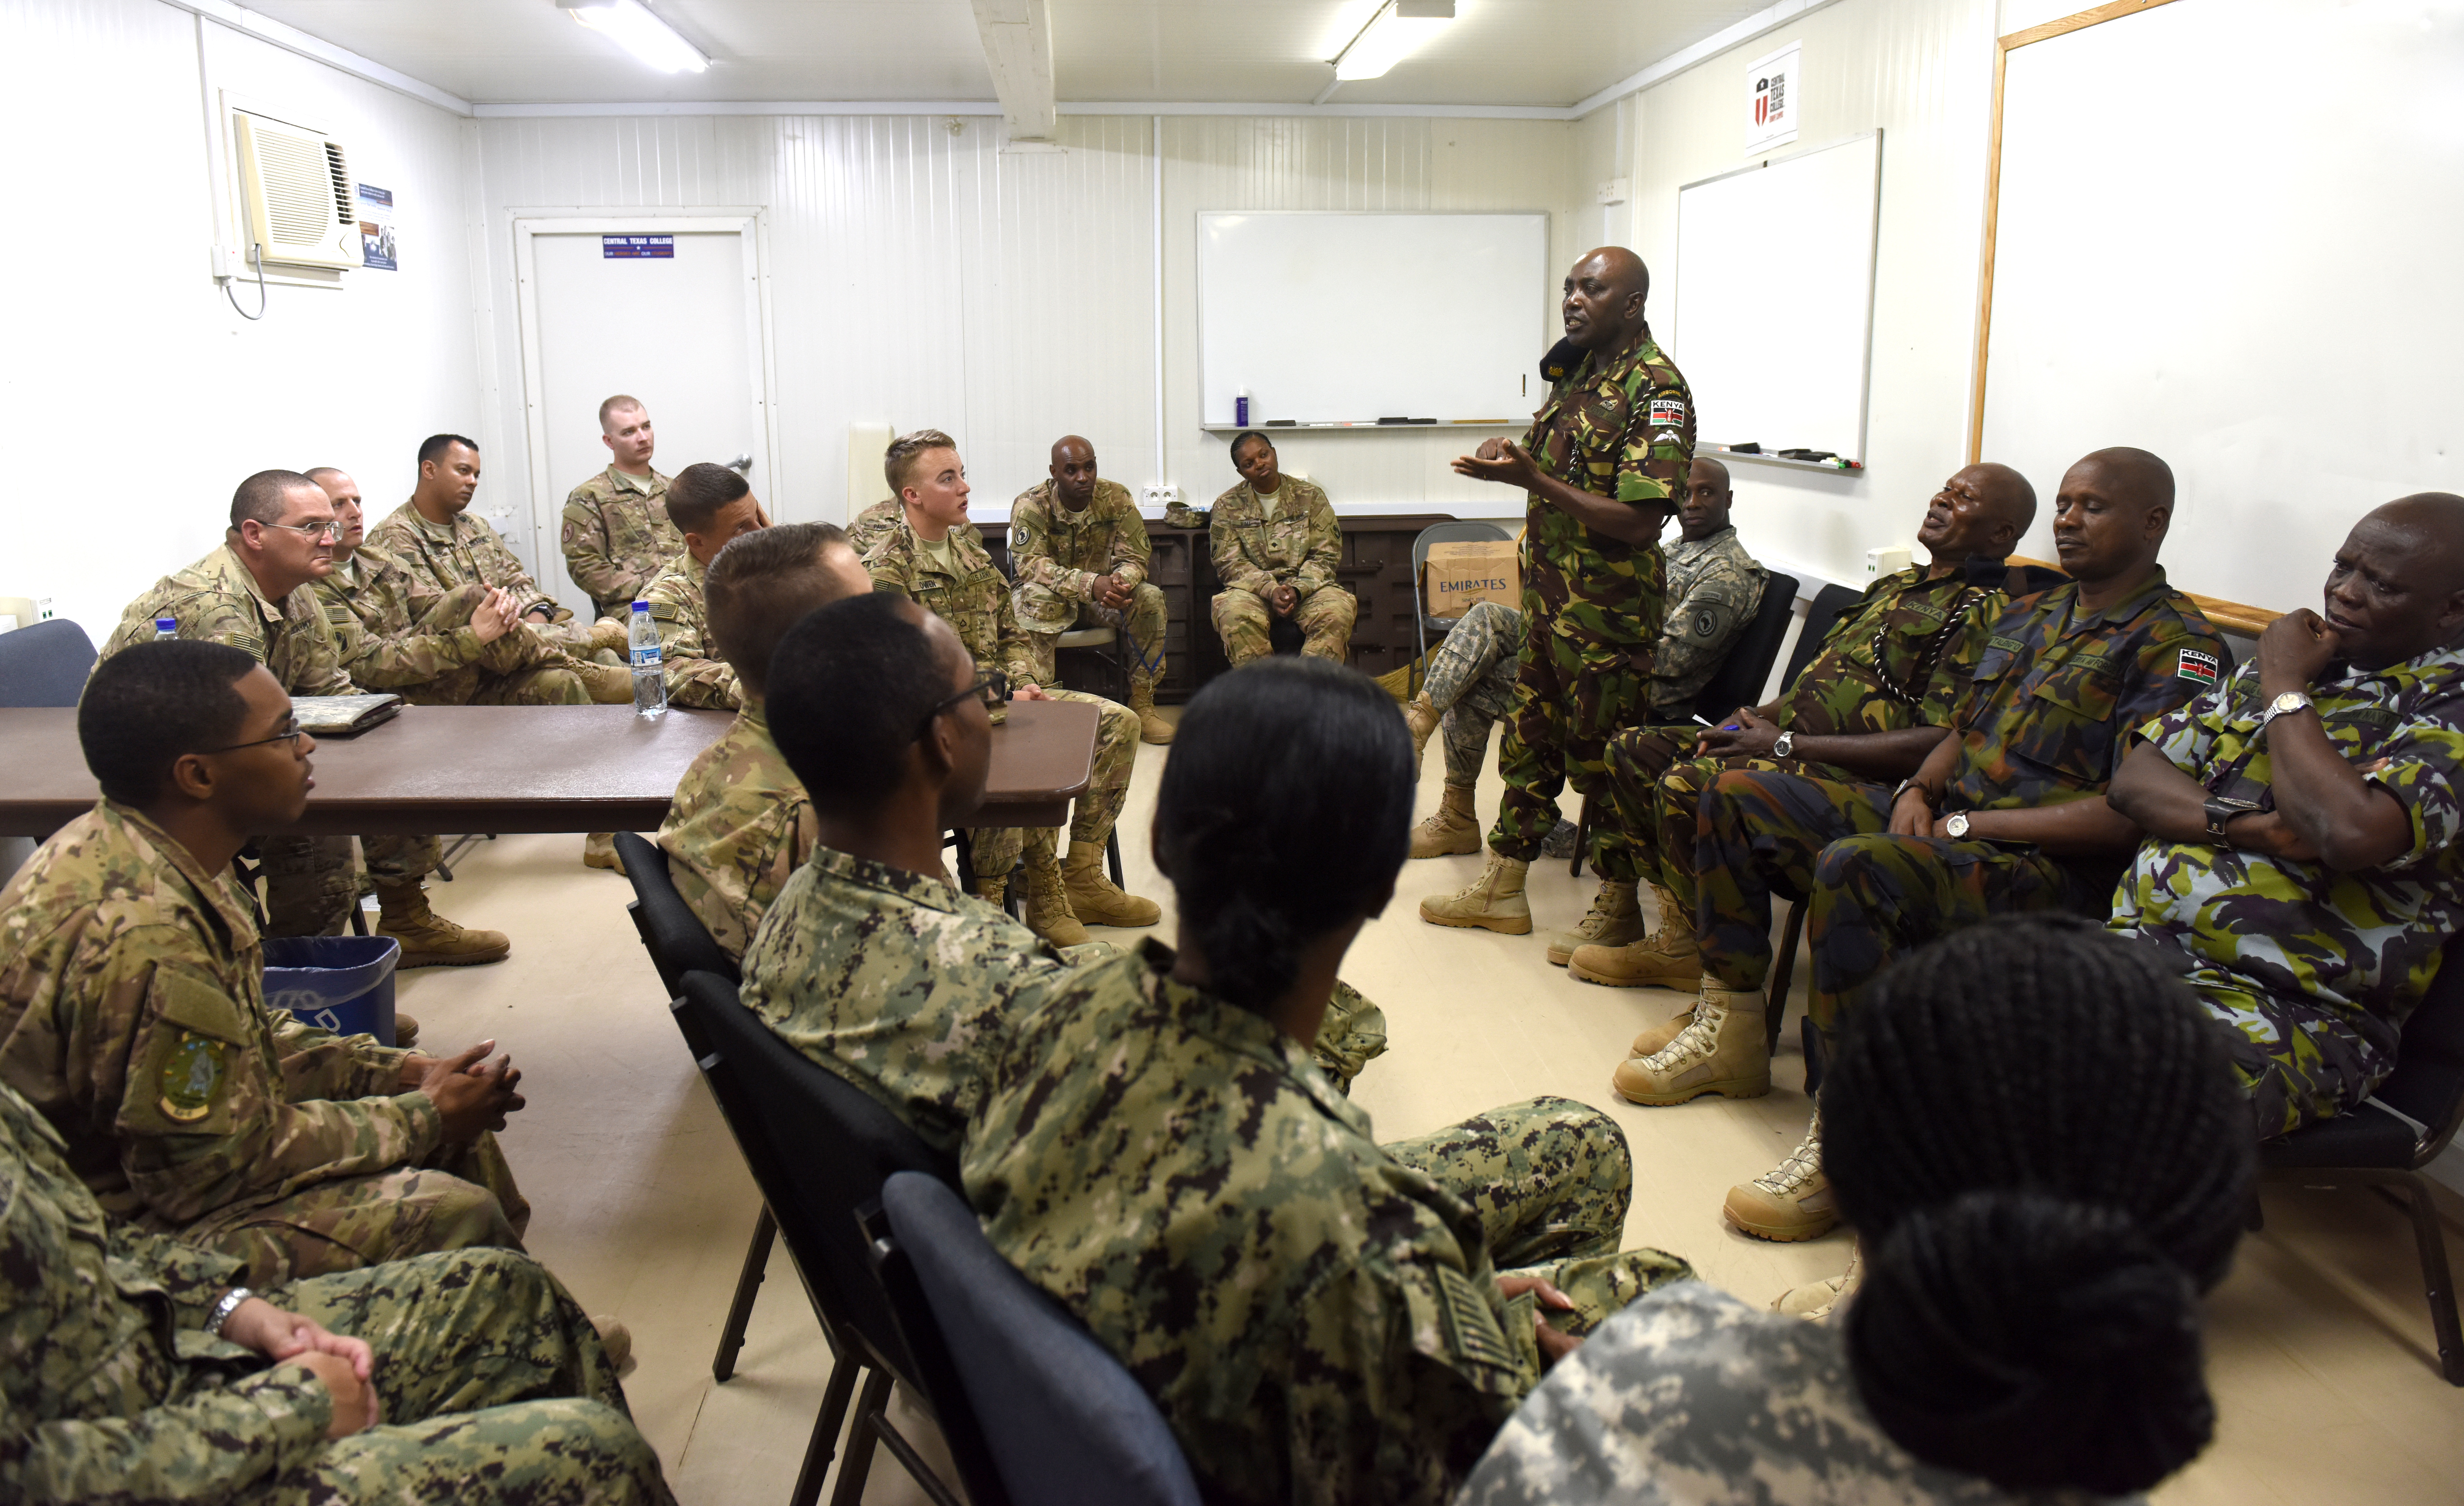 Senior enlisted leaders from the Kenya Defence Forces host a junior enlisted town hall meeting at Camp Lemonnier, Djibouti, during an SEL engagement Feb. 11, 2016. A difference amongst the KDF and U.S. enlisted forces is the level of responsibility and decision-making authority given to young Sailors, Soldiers, Airmen and Marines. (U.S. Air Force photo by Staff Sgt. Kate Thornton)